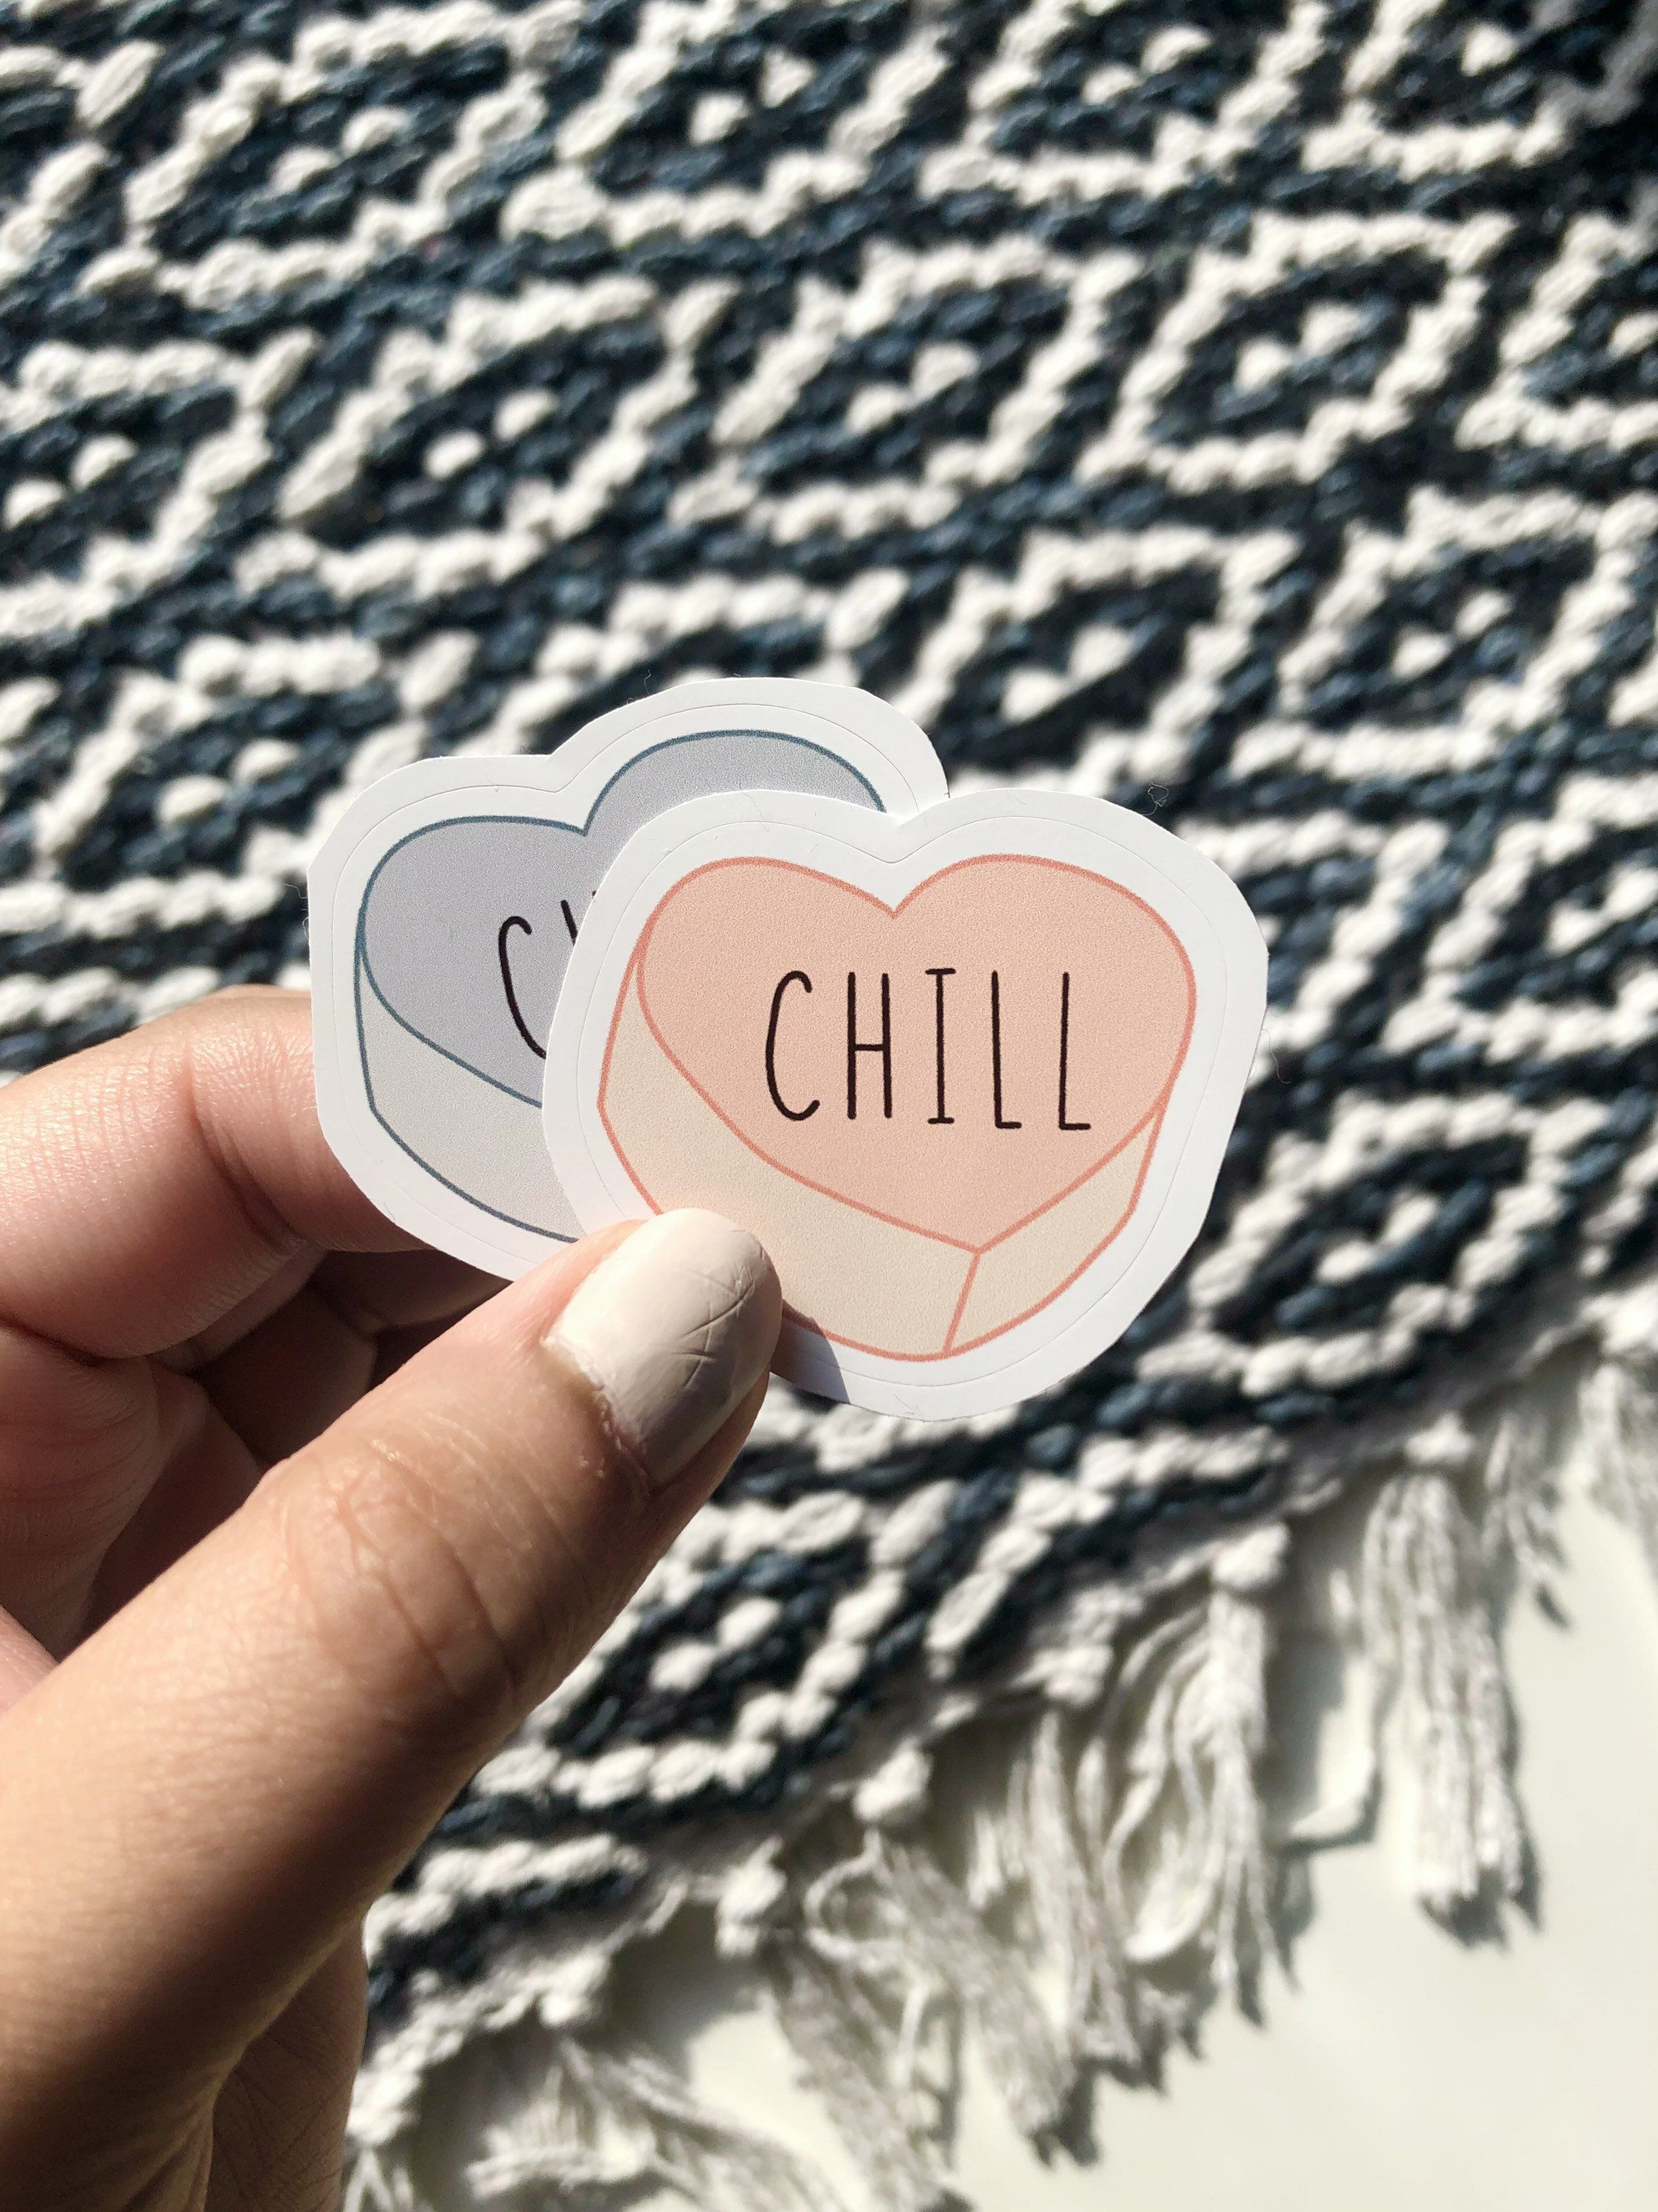 Chill Candy Hearts Sticker, Aesthetic Valentine's Day Sticker, Lonely Hearts Sticker, Sugar Candy Sticker, Laptop Sarcastic Funny Sticker